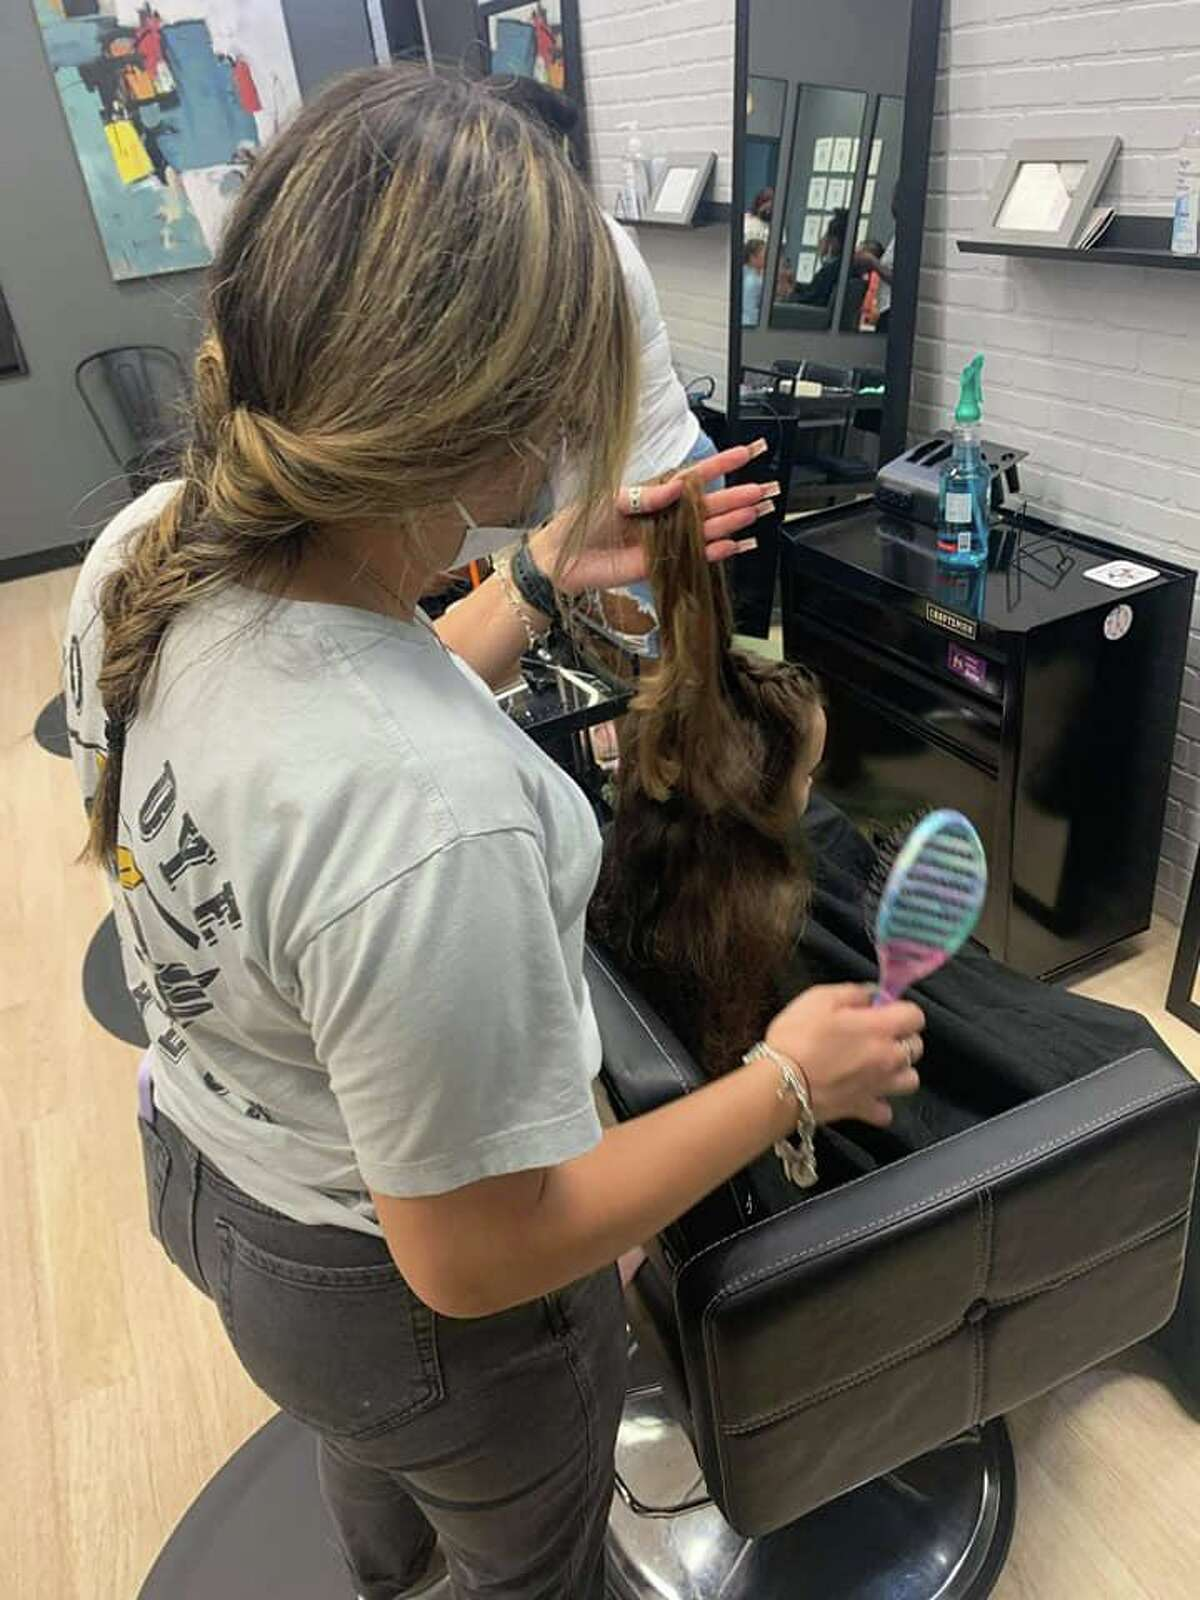 Dozens of fades, tapers, braids and trims for boys and girls were performed by the staff, including Kane's wife, Olivia who owns the adjoining salon and spa, Do or Dye.